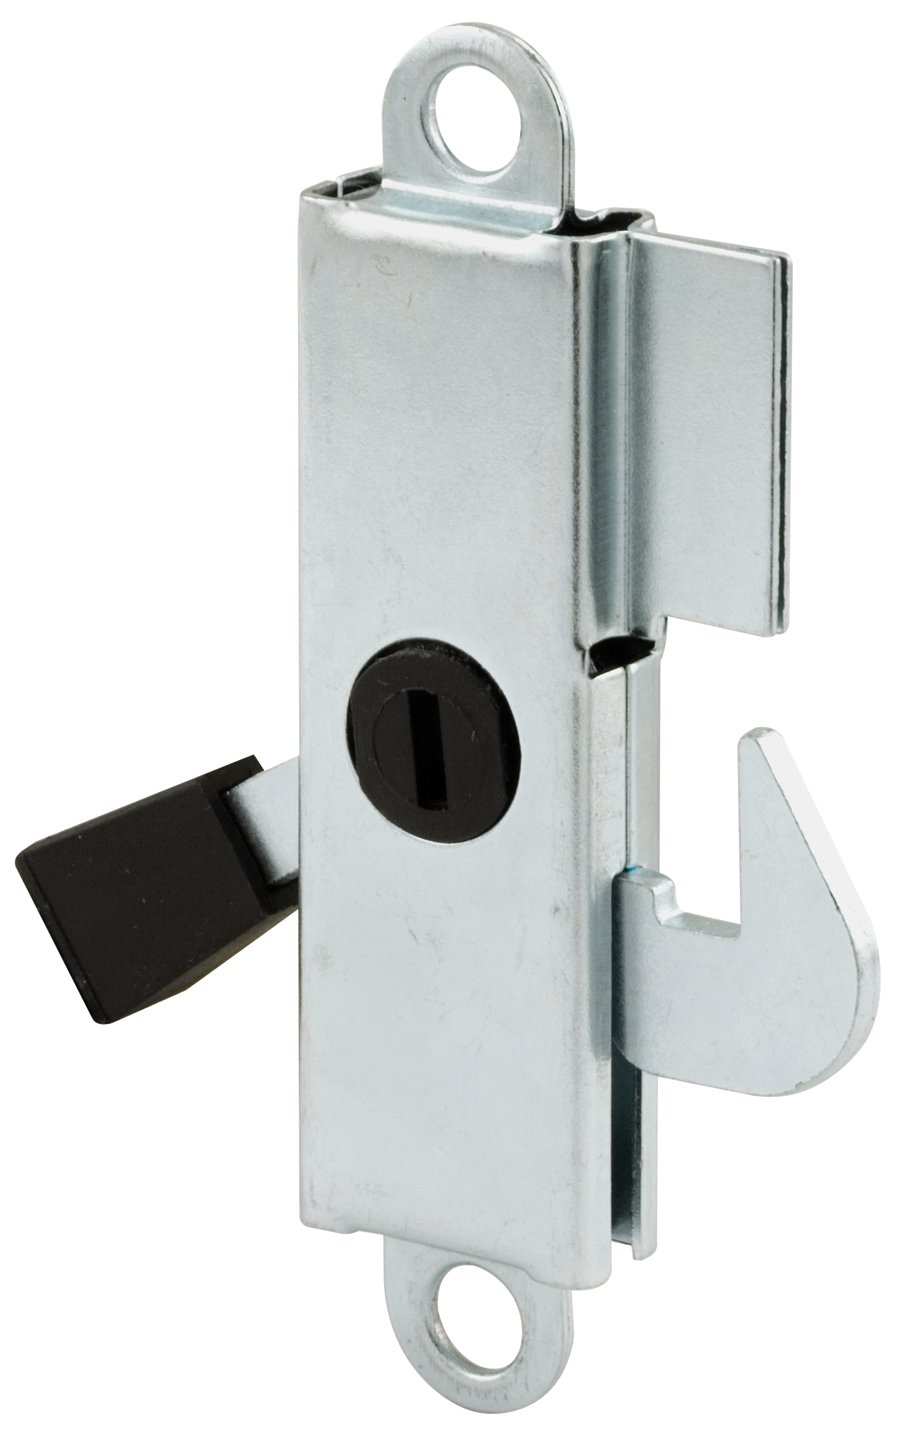 Exceptionnel Prime Line Products E 2105 Sliding Door Internal Lock, Aluminum With Steel  Hook And Lever   Cabinet And Furniture Latches   Amazon.com